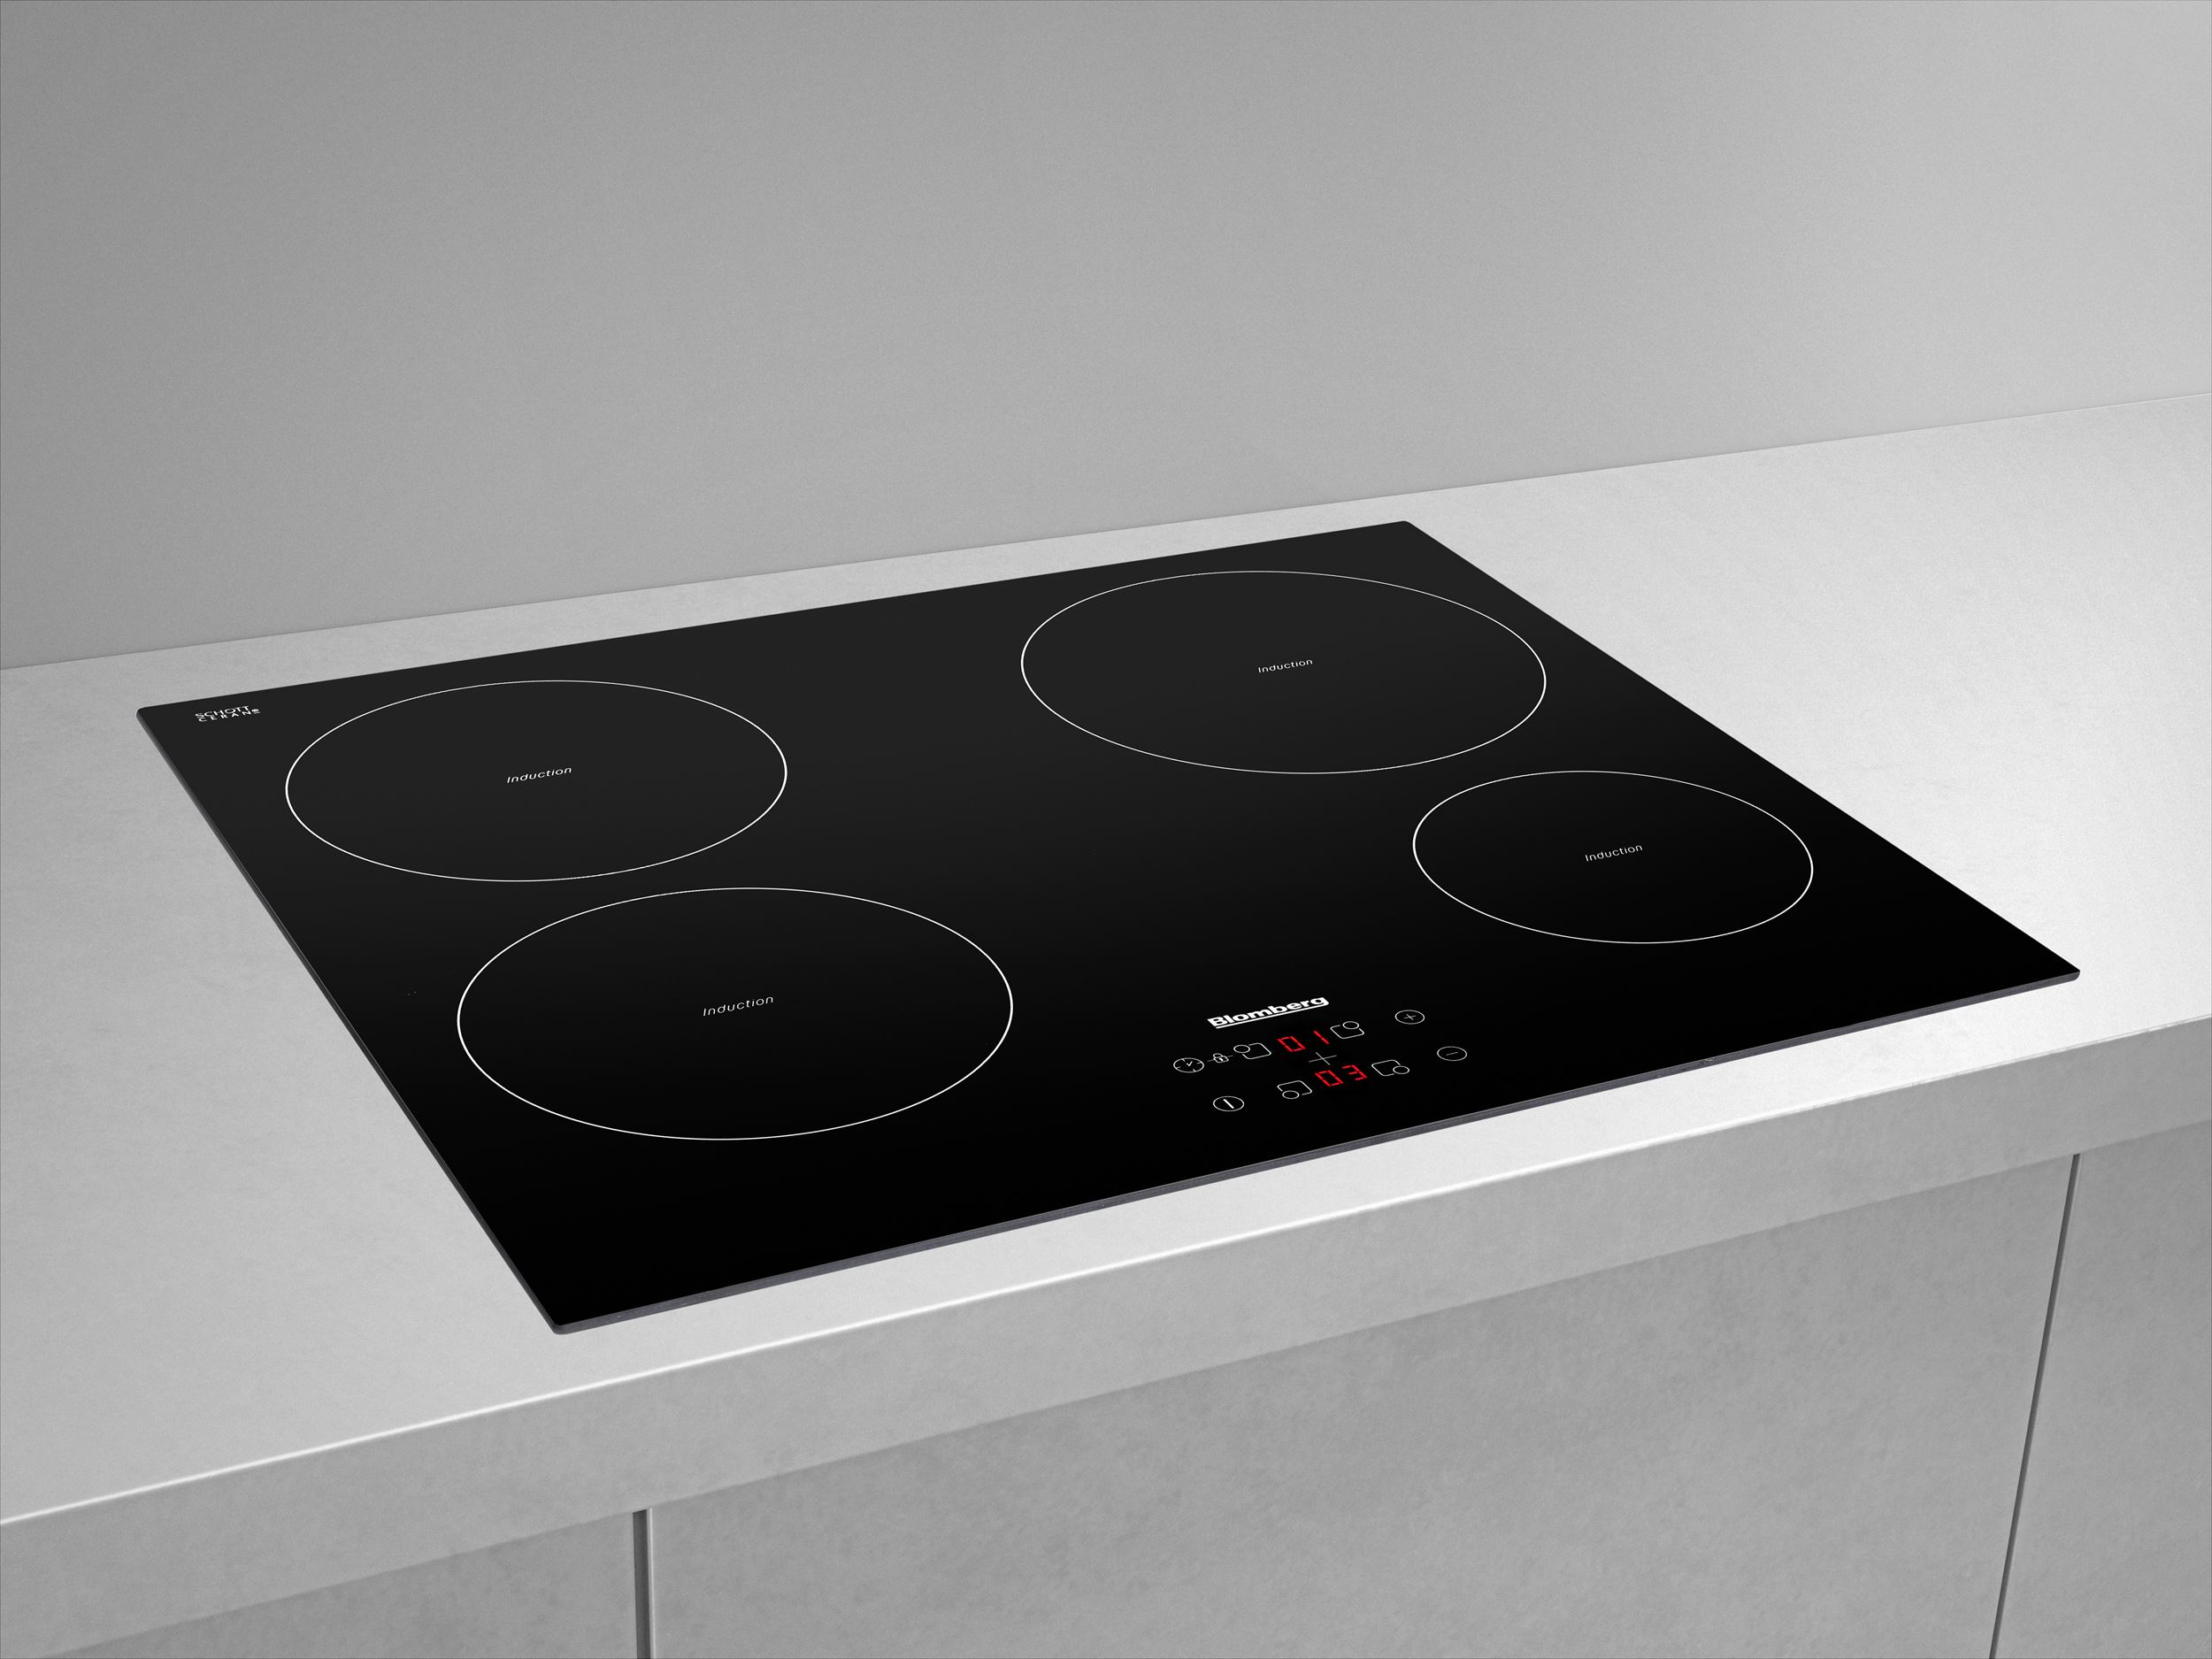 Min54306n 60cm Touch Control Induction Hob